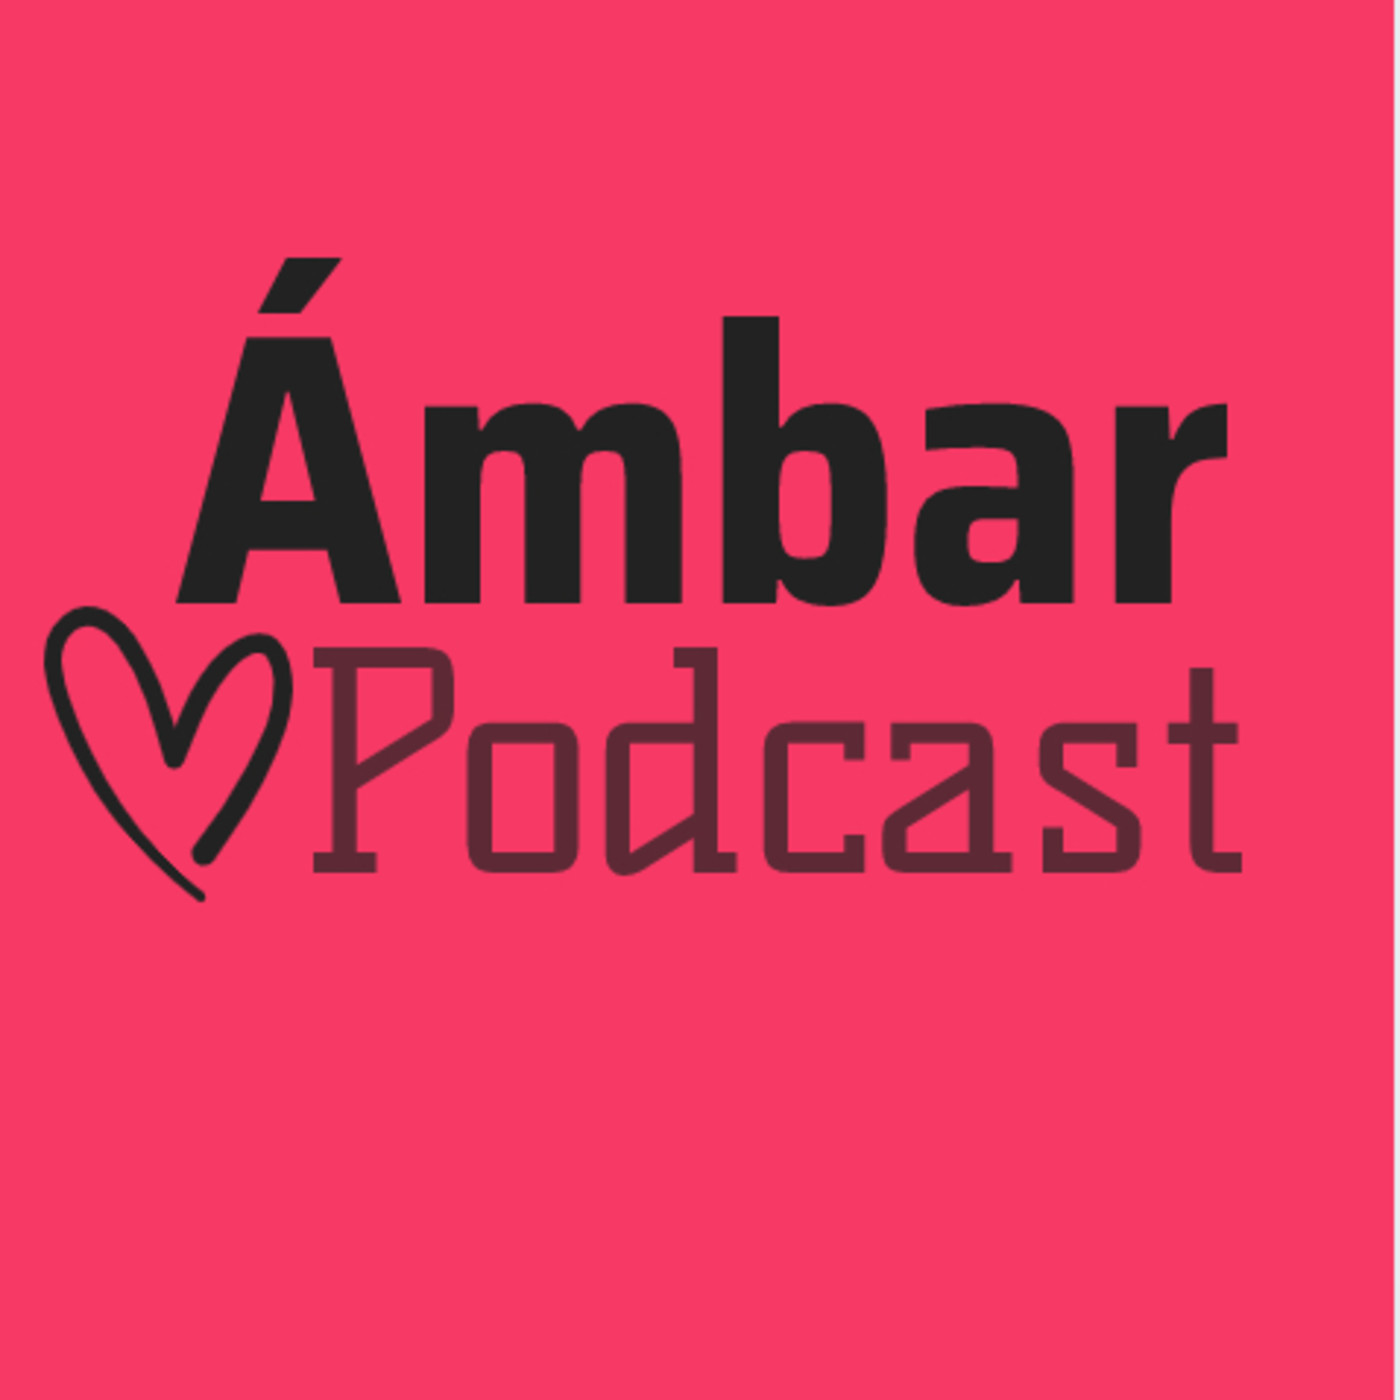 Ambar Podcast Audiorelatos